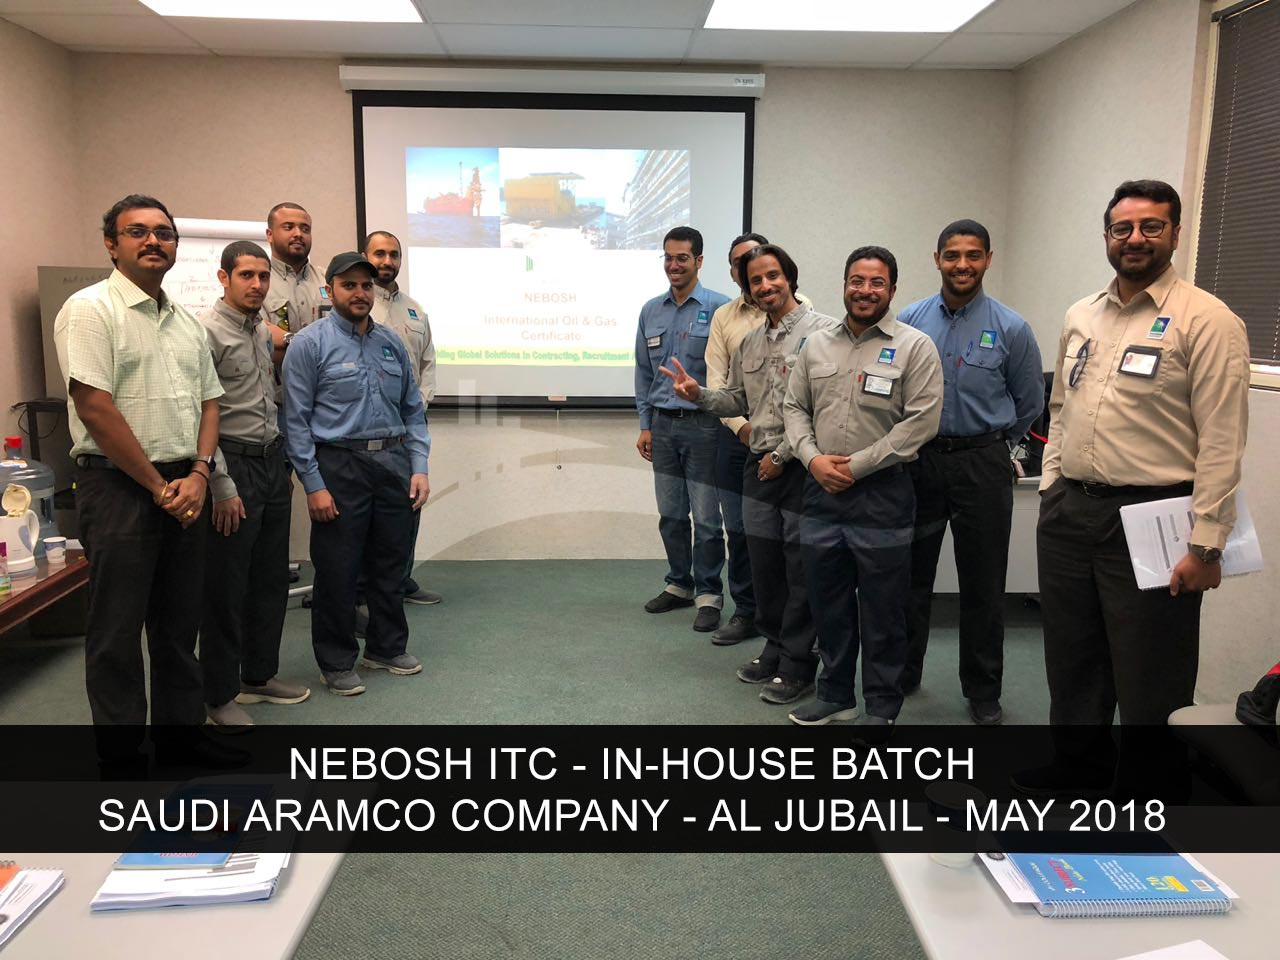 Nebosh Itc In House Training At Saudi Aramco Company Jubail Ksa